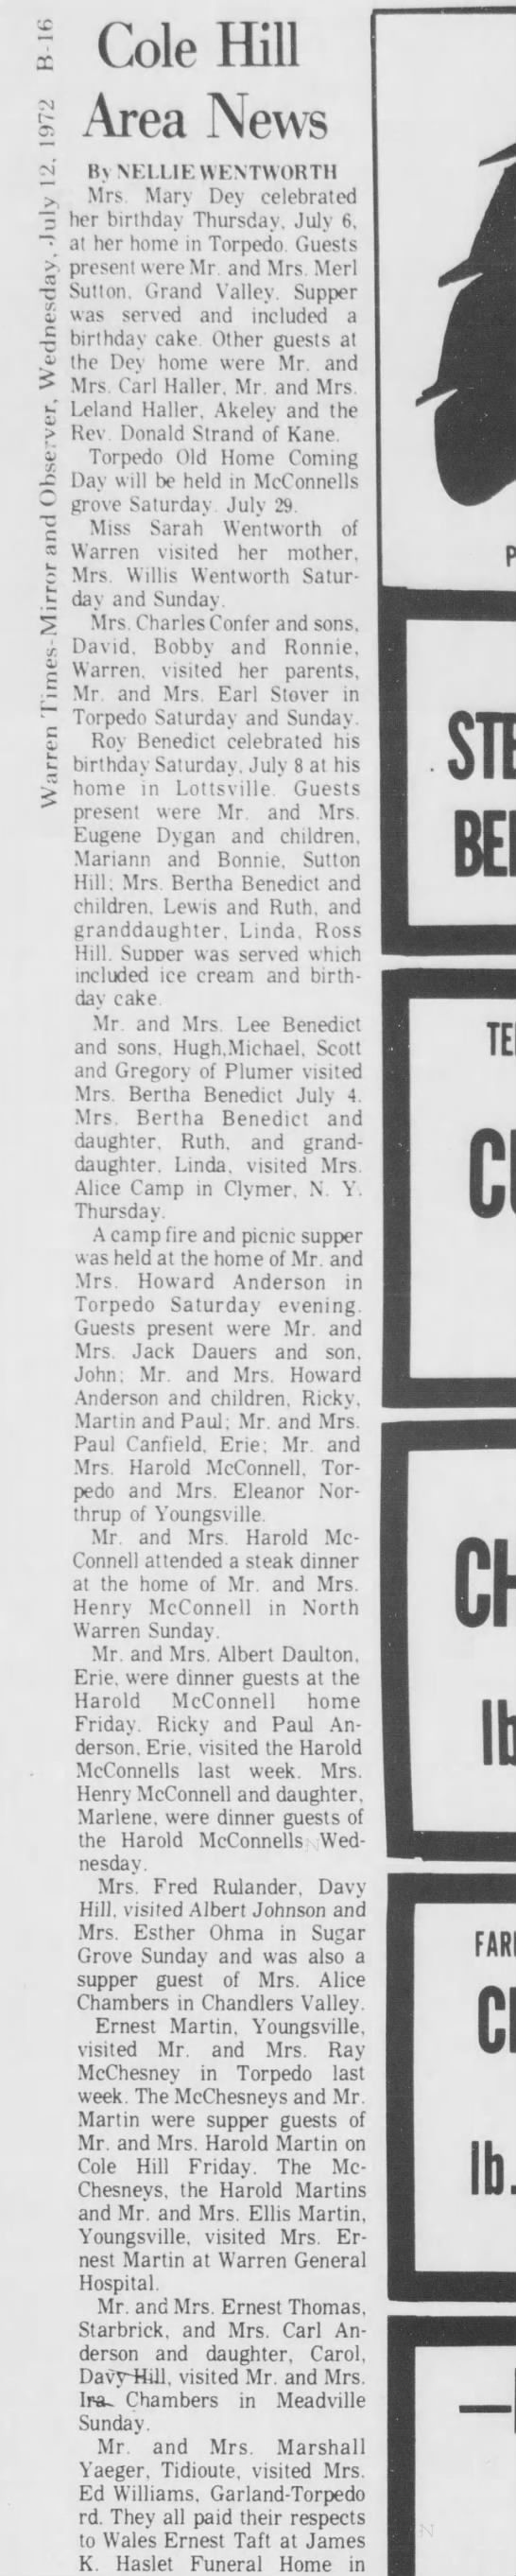 Warren-Times Mirror and Observer 12 Jul 1972 Wed - l Cole Hill Area News CO w c 0 La C 03 c By...